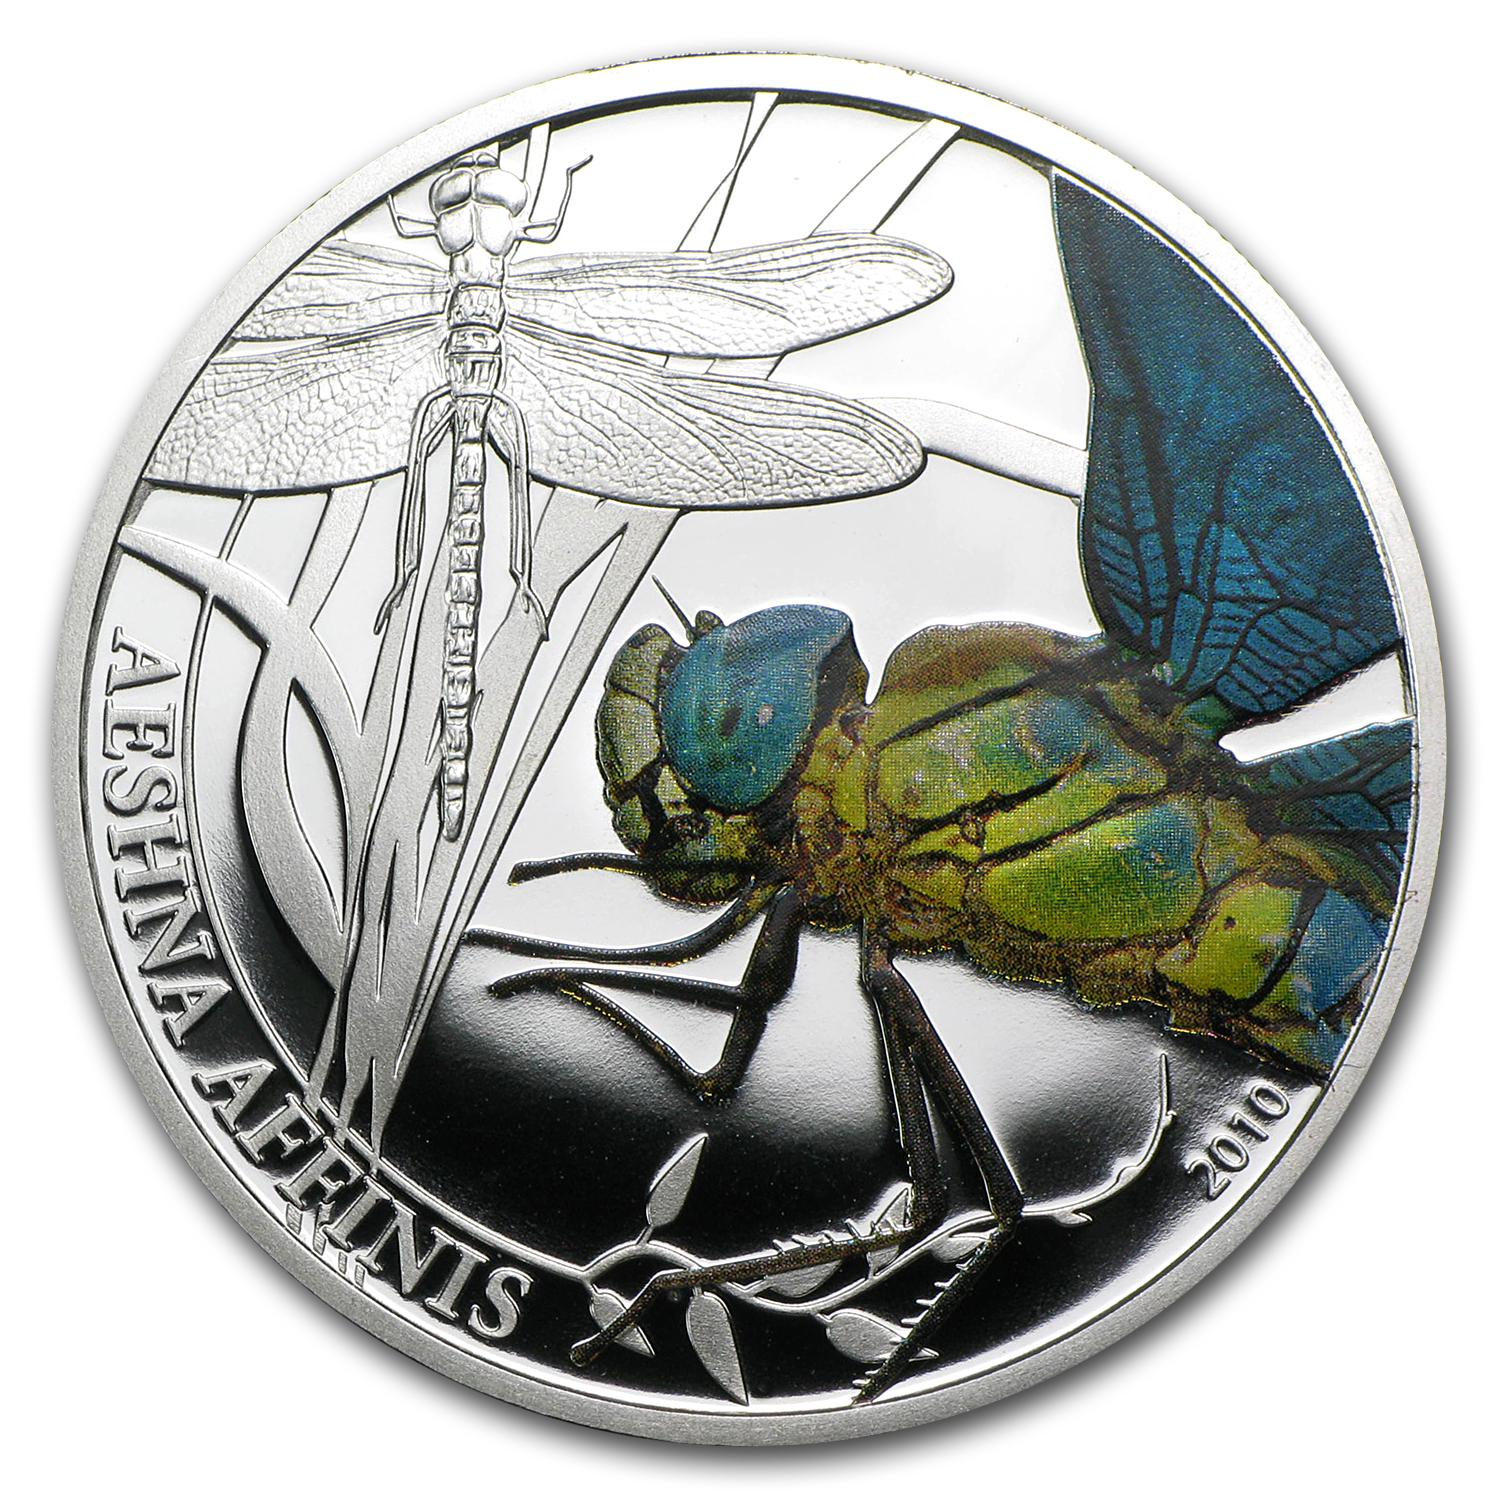 2010 Palau Proof Silver $2 World of Insects Dragonfly